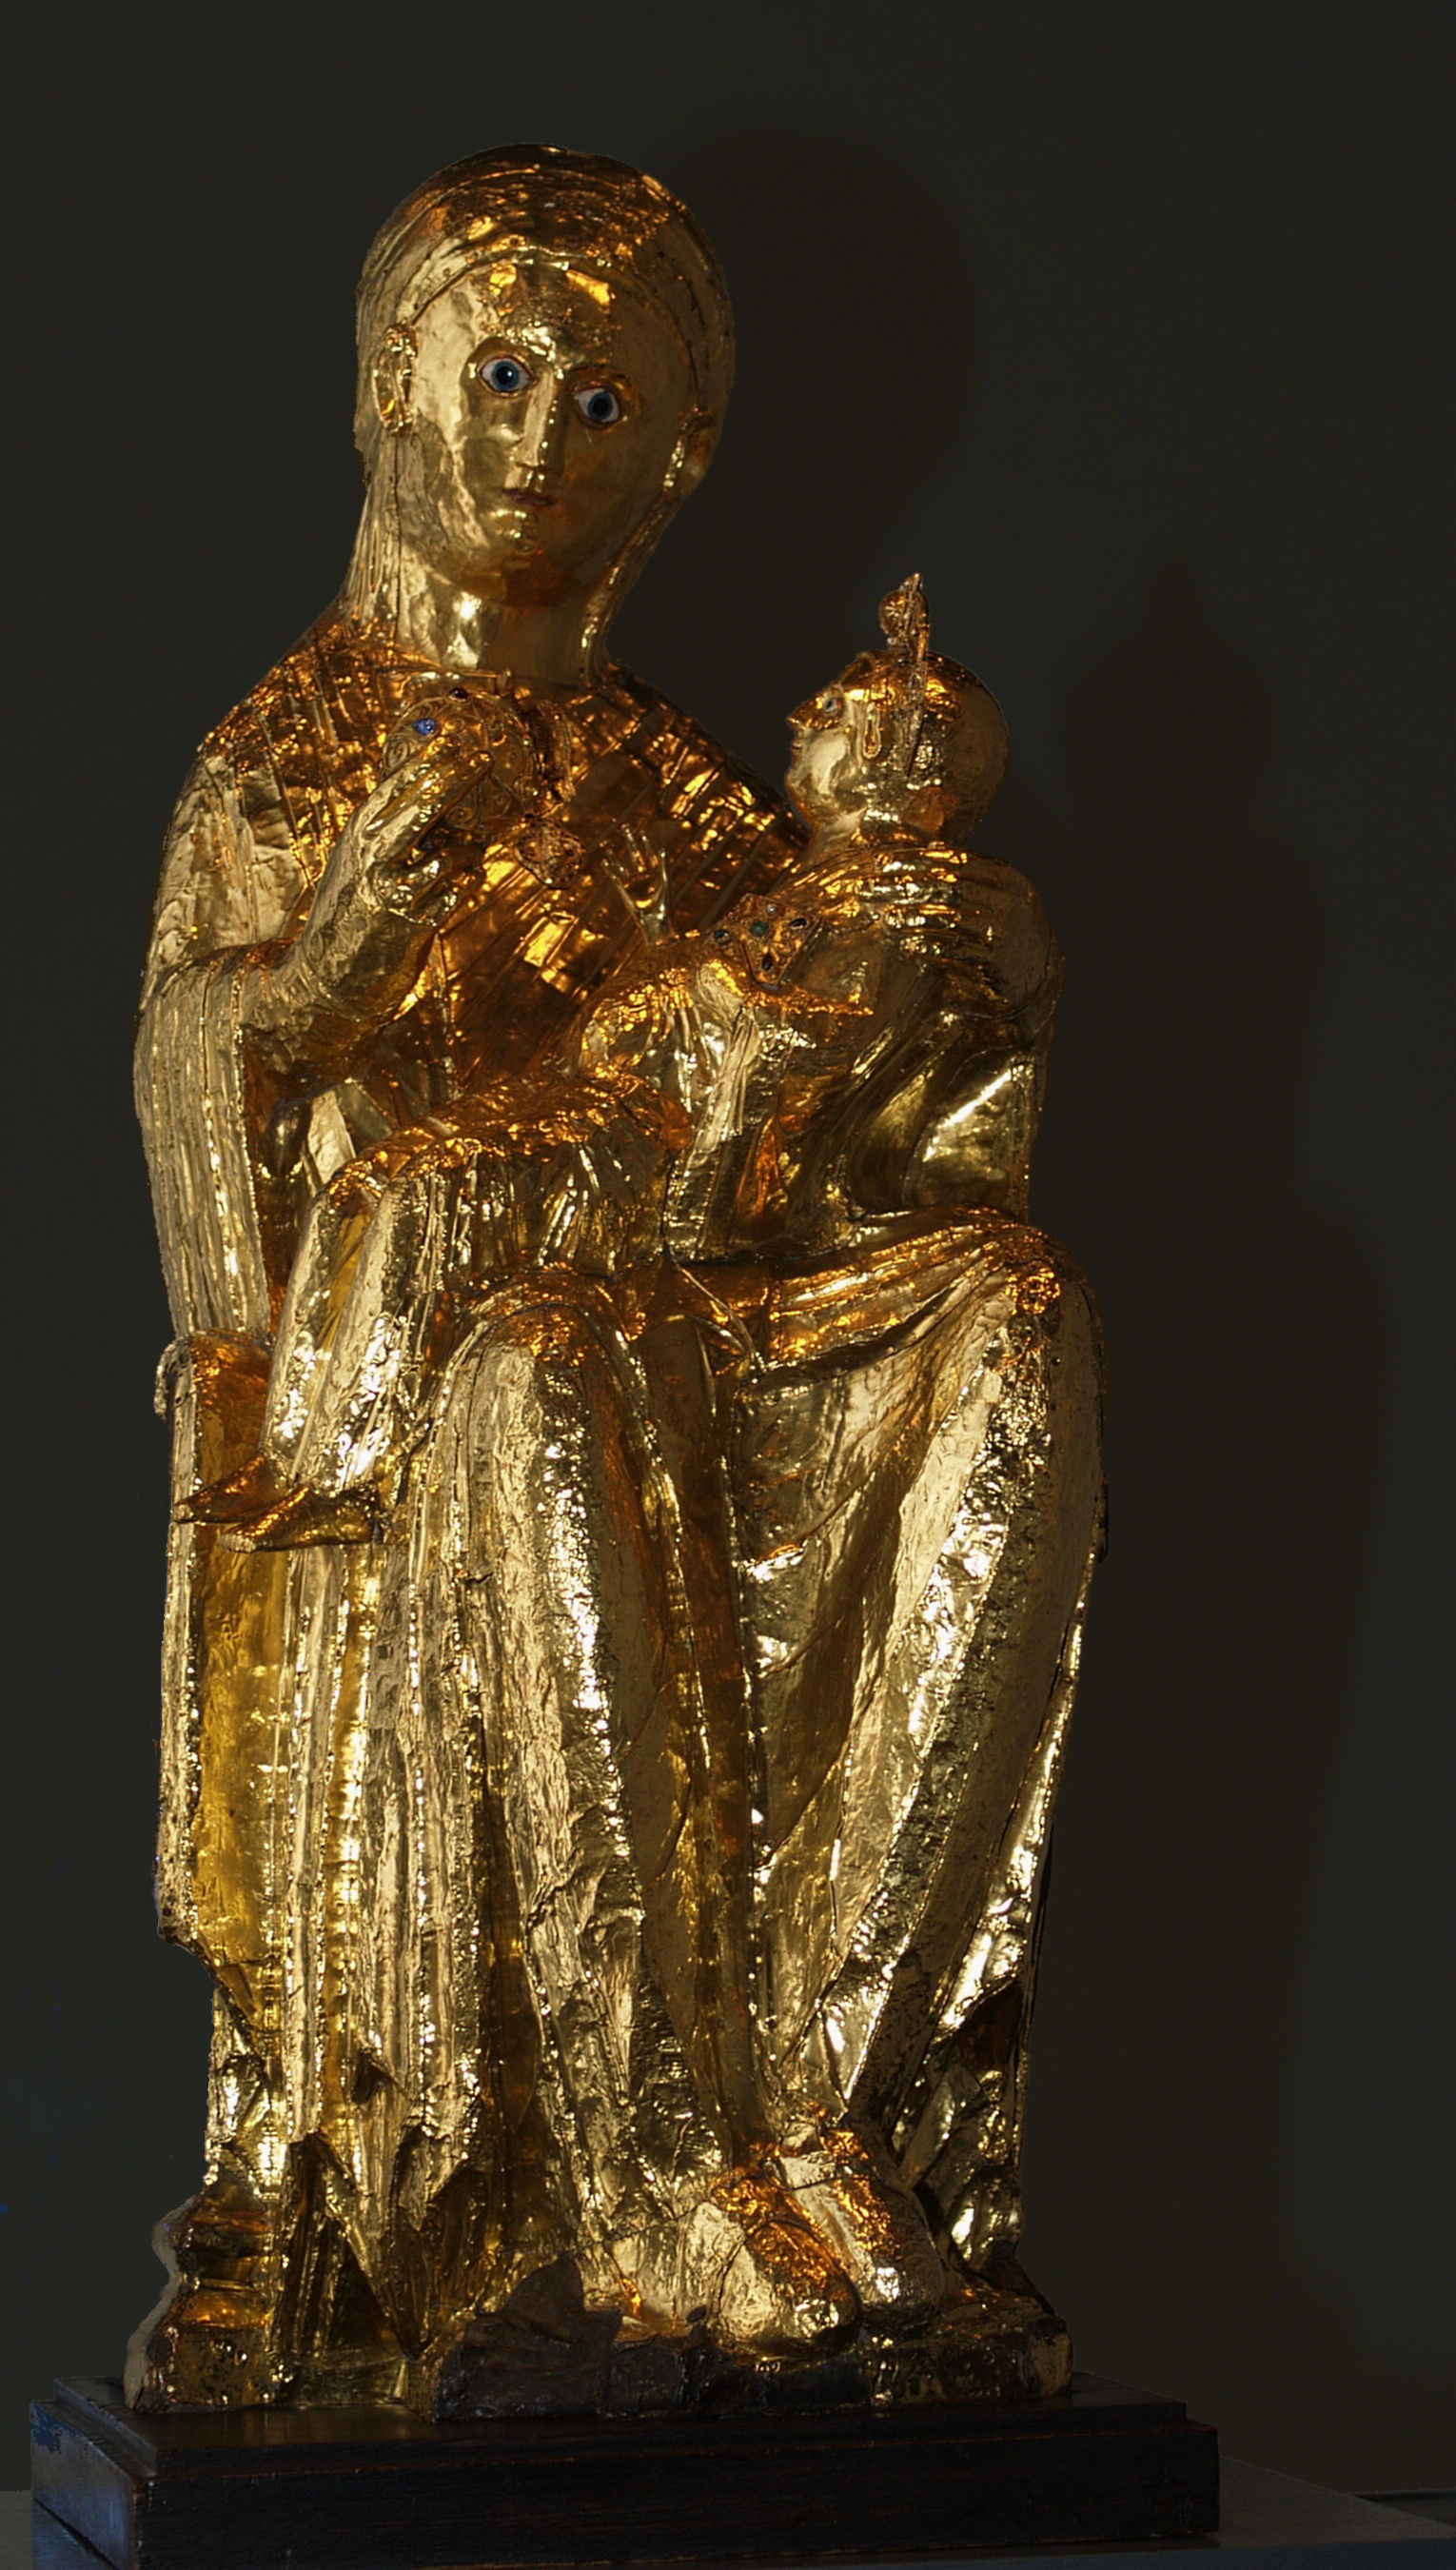 https://upload.wikimedia.org/wikipedia/commons/9/93/Essen_muenster_goldene_madonna-5_derivative_bg_as.jpg